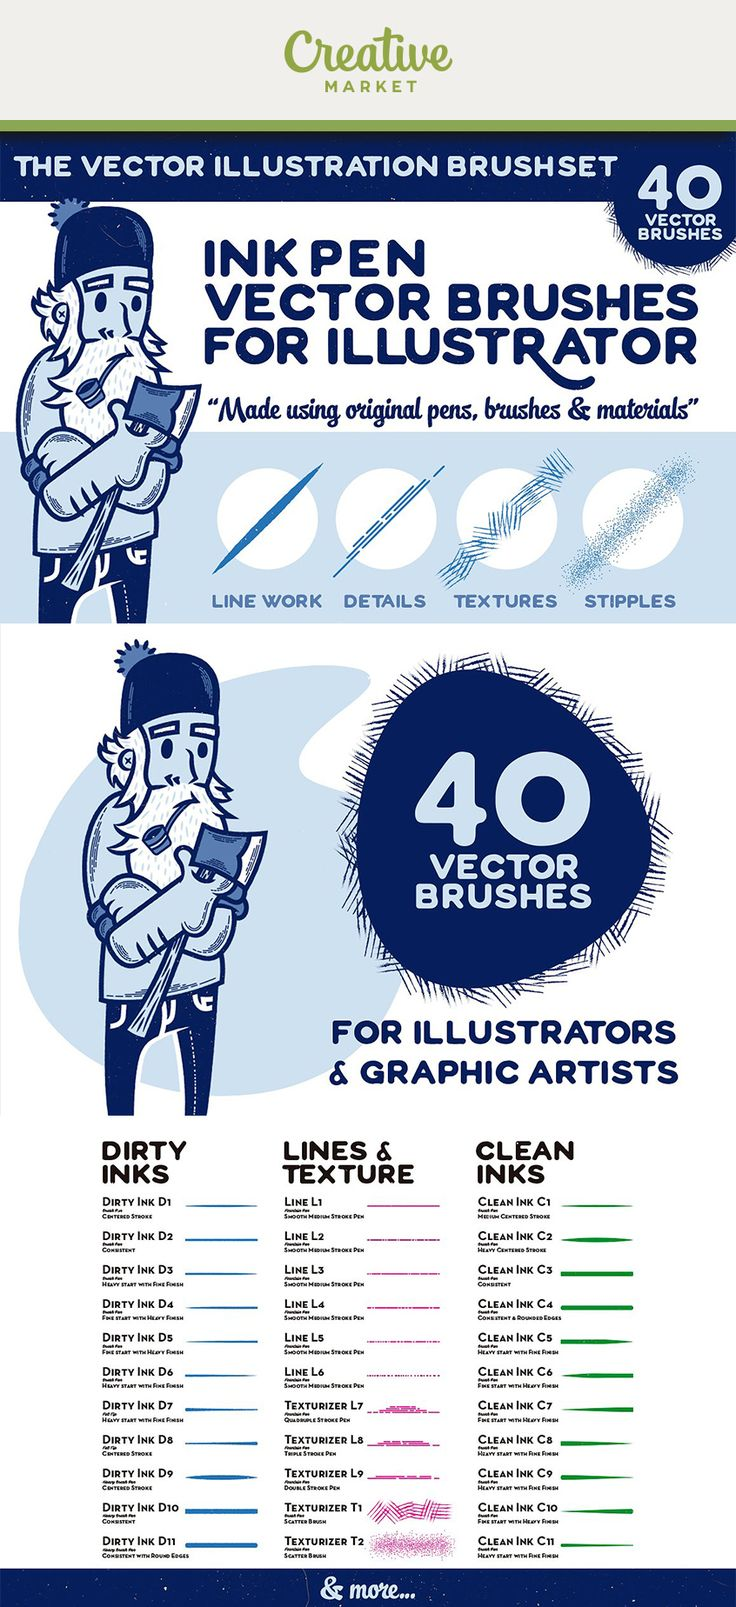 Ad: 40 VECTOR BRUSHES FOR ILLUSTRATORS & GRAPHIC ARTISTS. Have you ever wondered how some digital artists are able to create such realistic pen and ink illustrations with textures and everything? Now on Creative Market